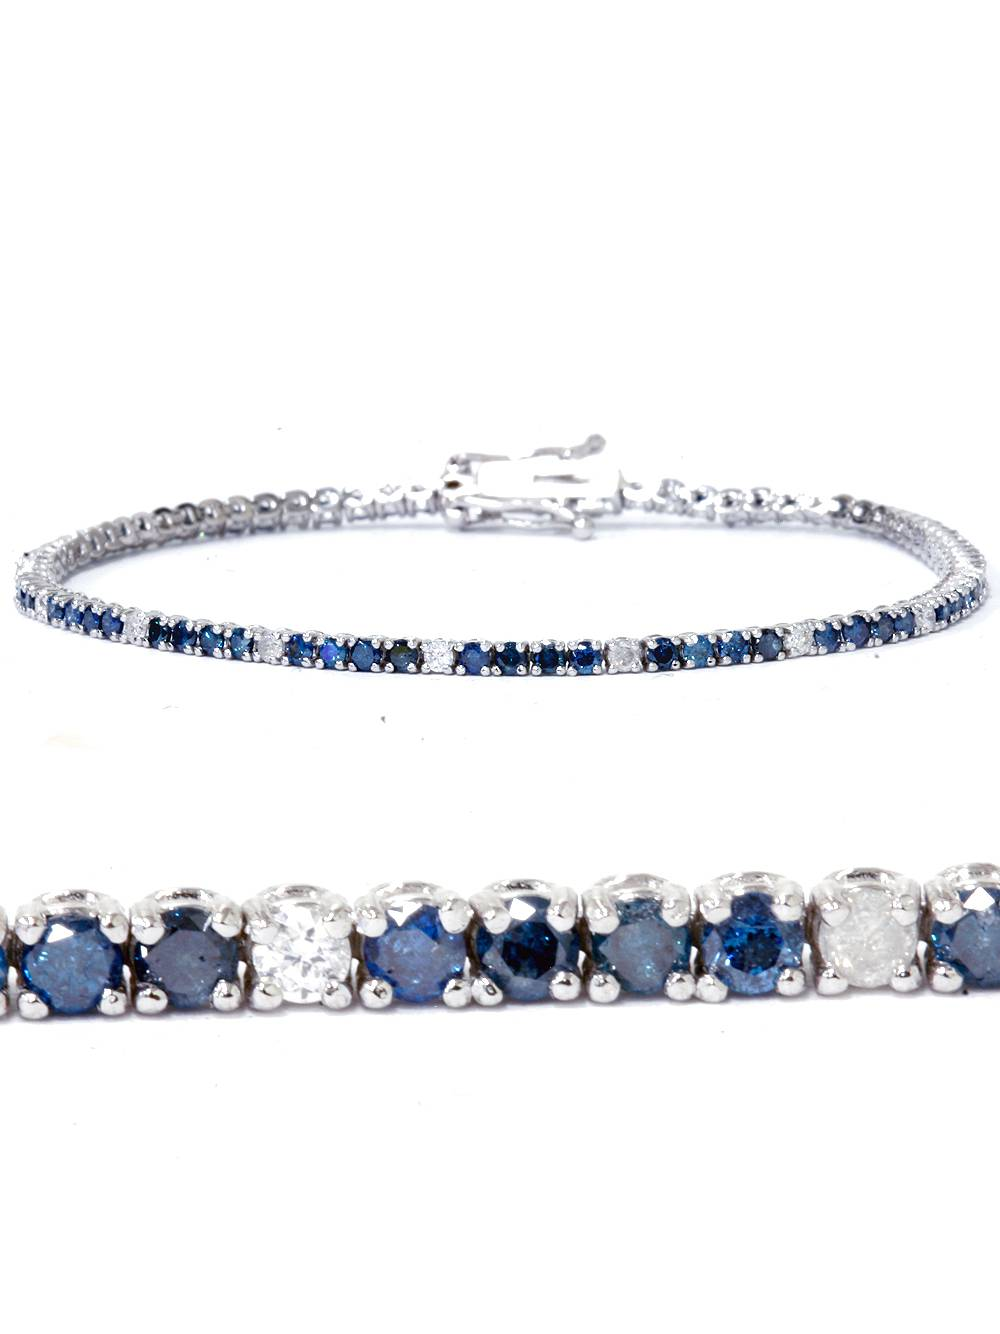 2ct Treated Blue & White Diamond Tennis Bracelet 14K White Gold